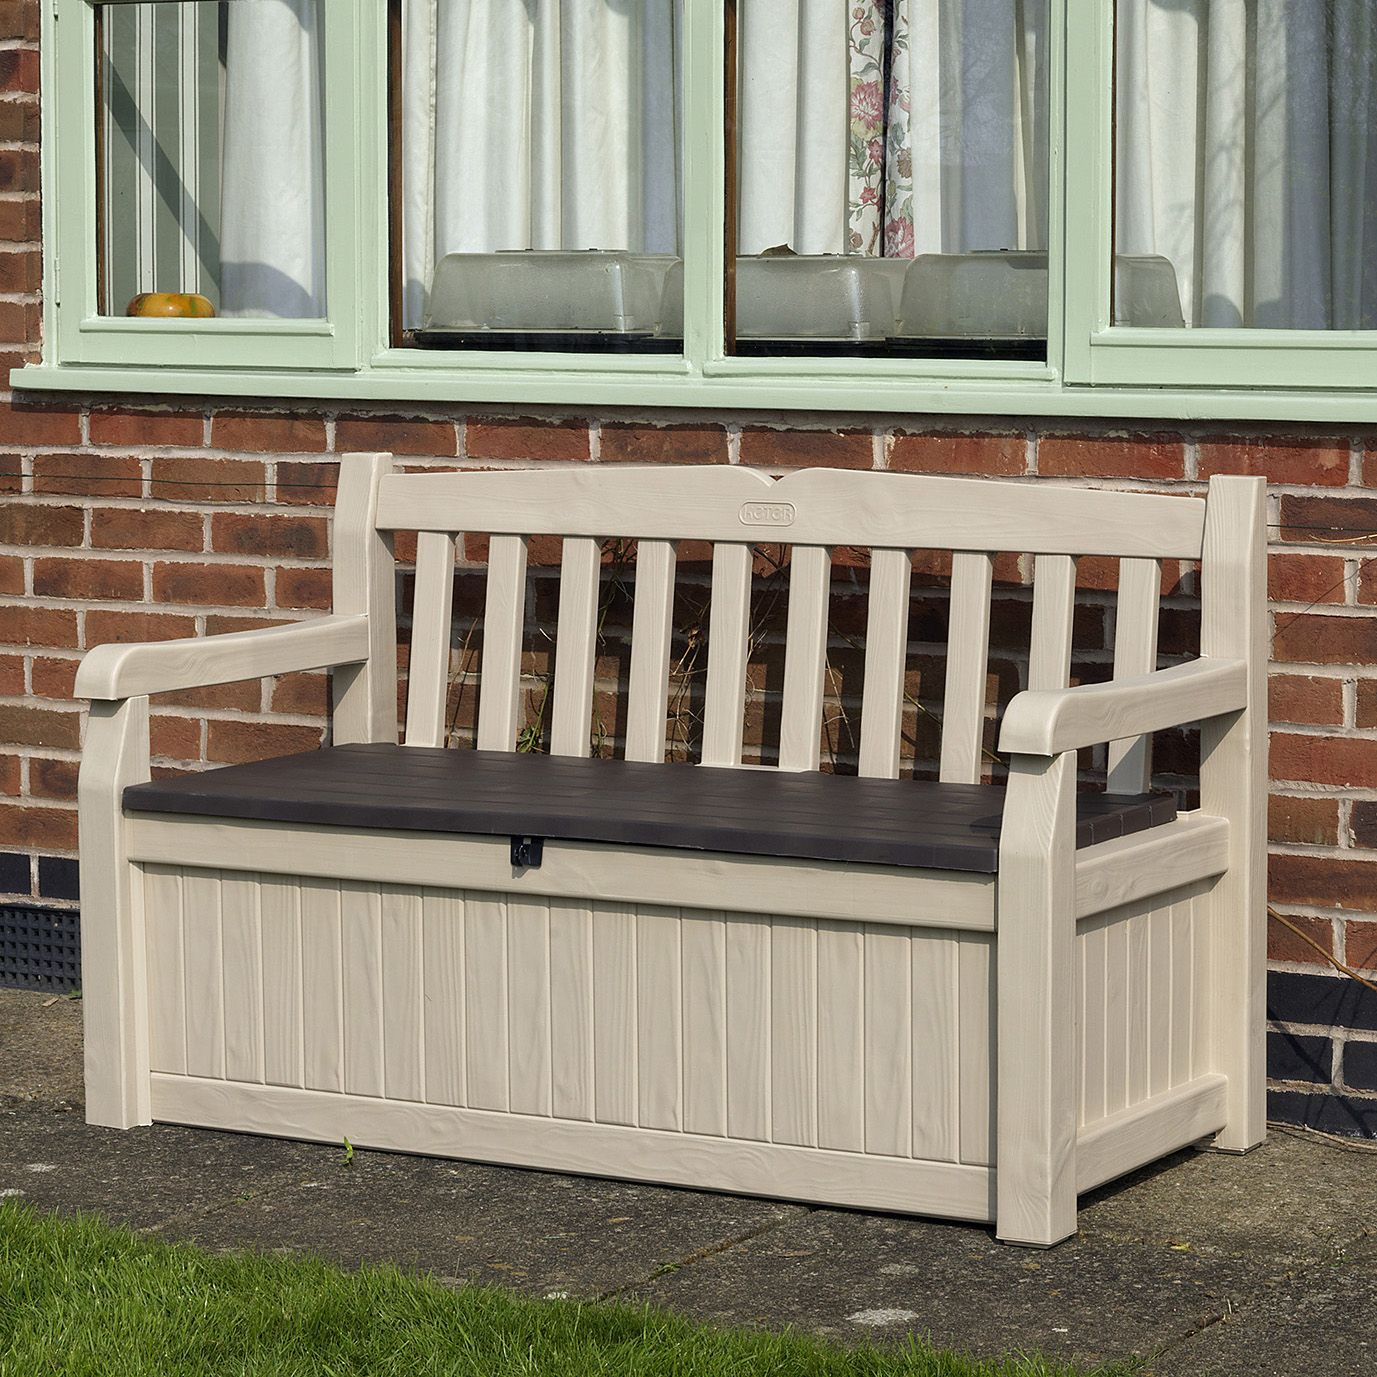 Wood Effect Plastic Garden Bench Amp Storage Box